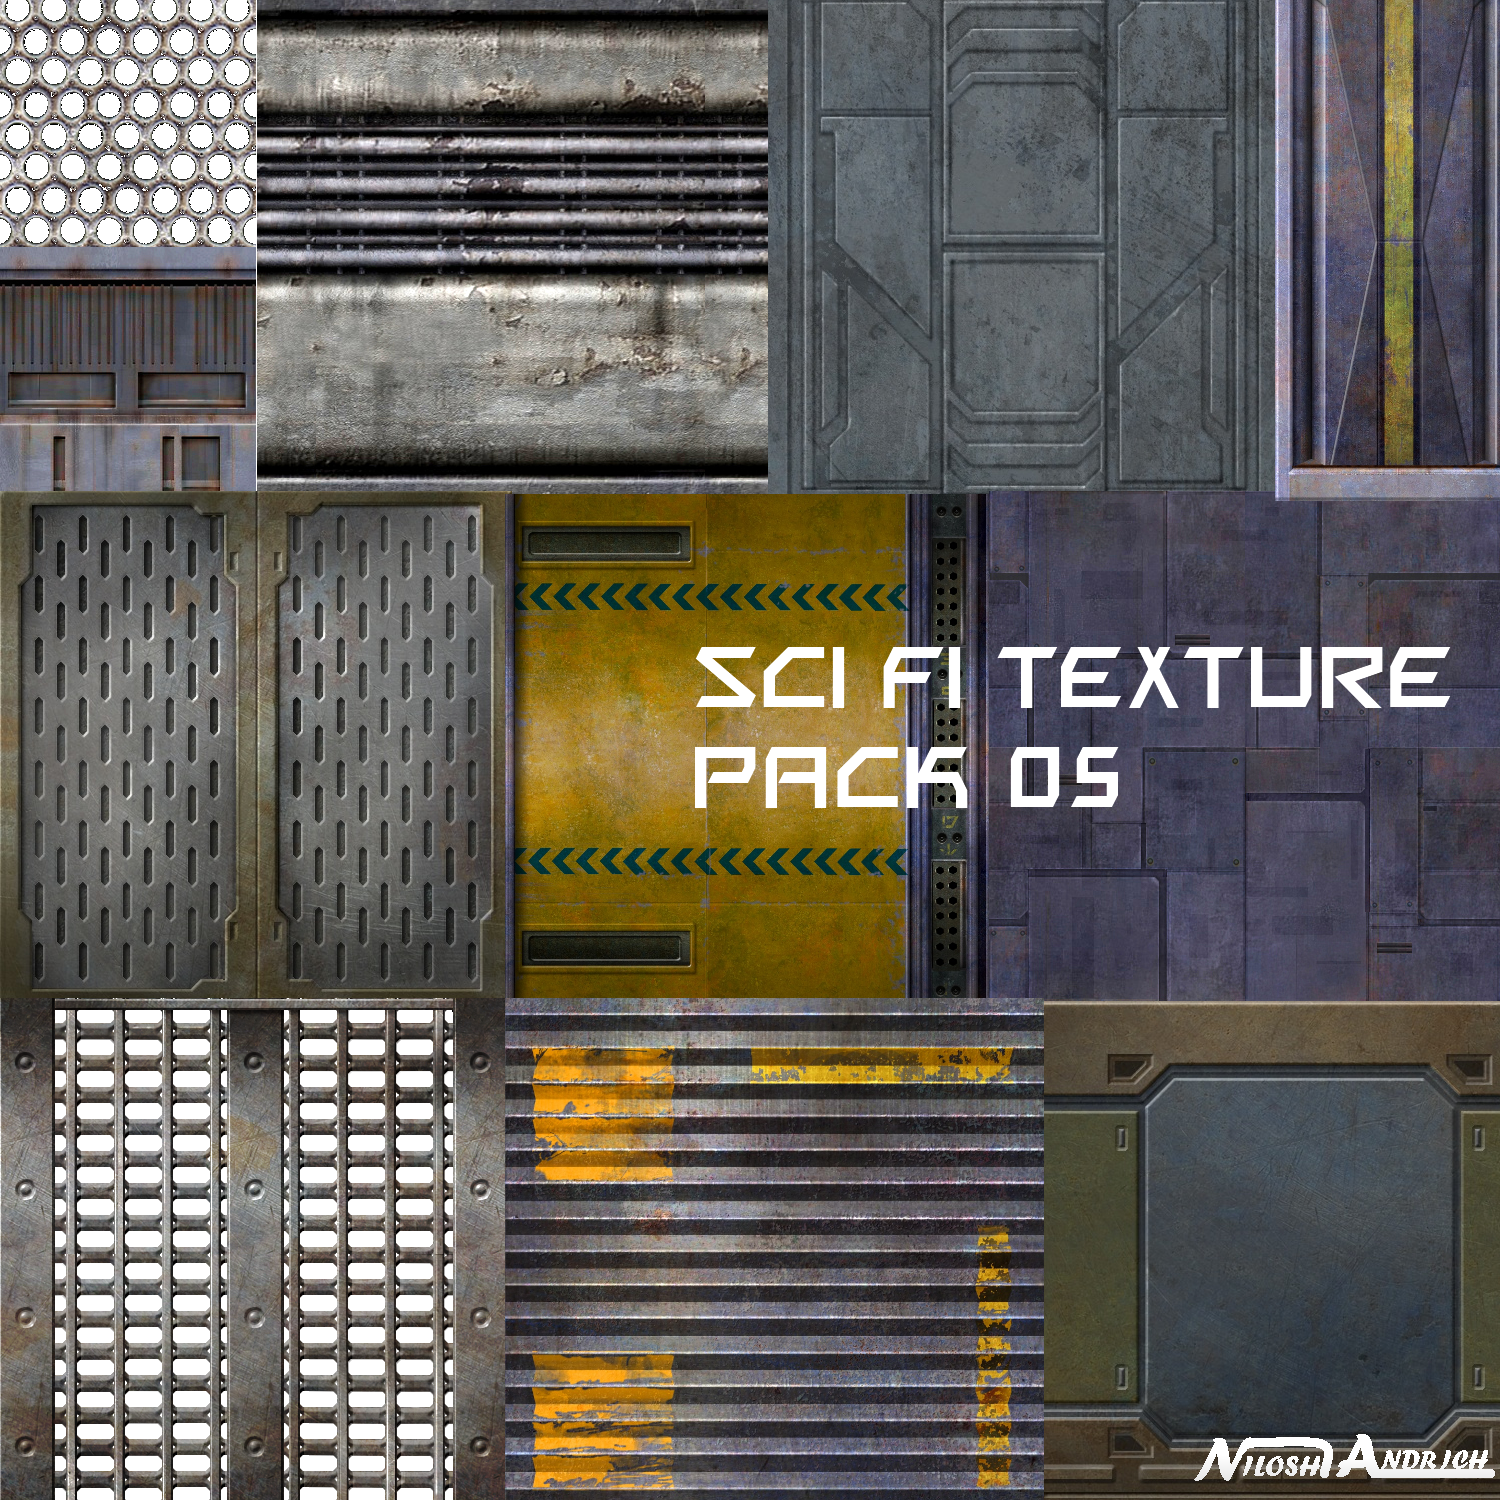 sci fi light texture. Sci Fi Texure Pack 05 By MiloshAndrich On DeviantArt Light Texture